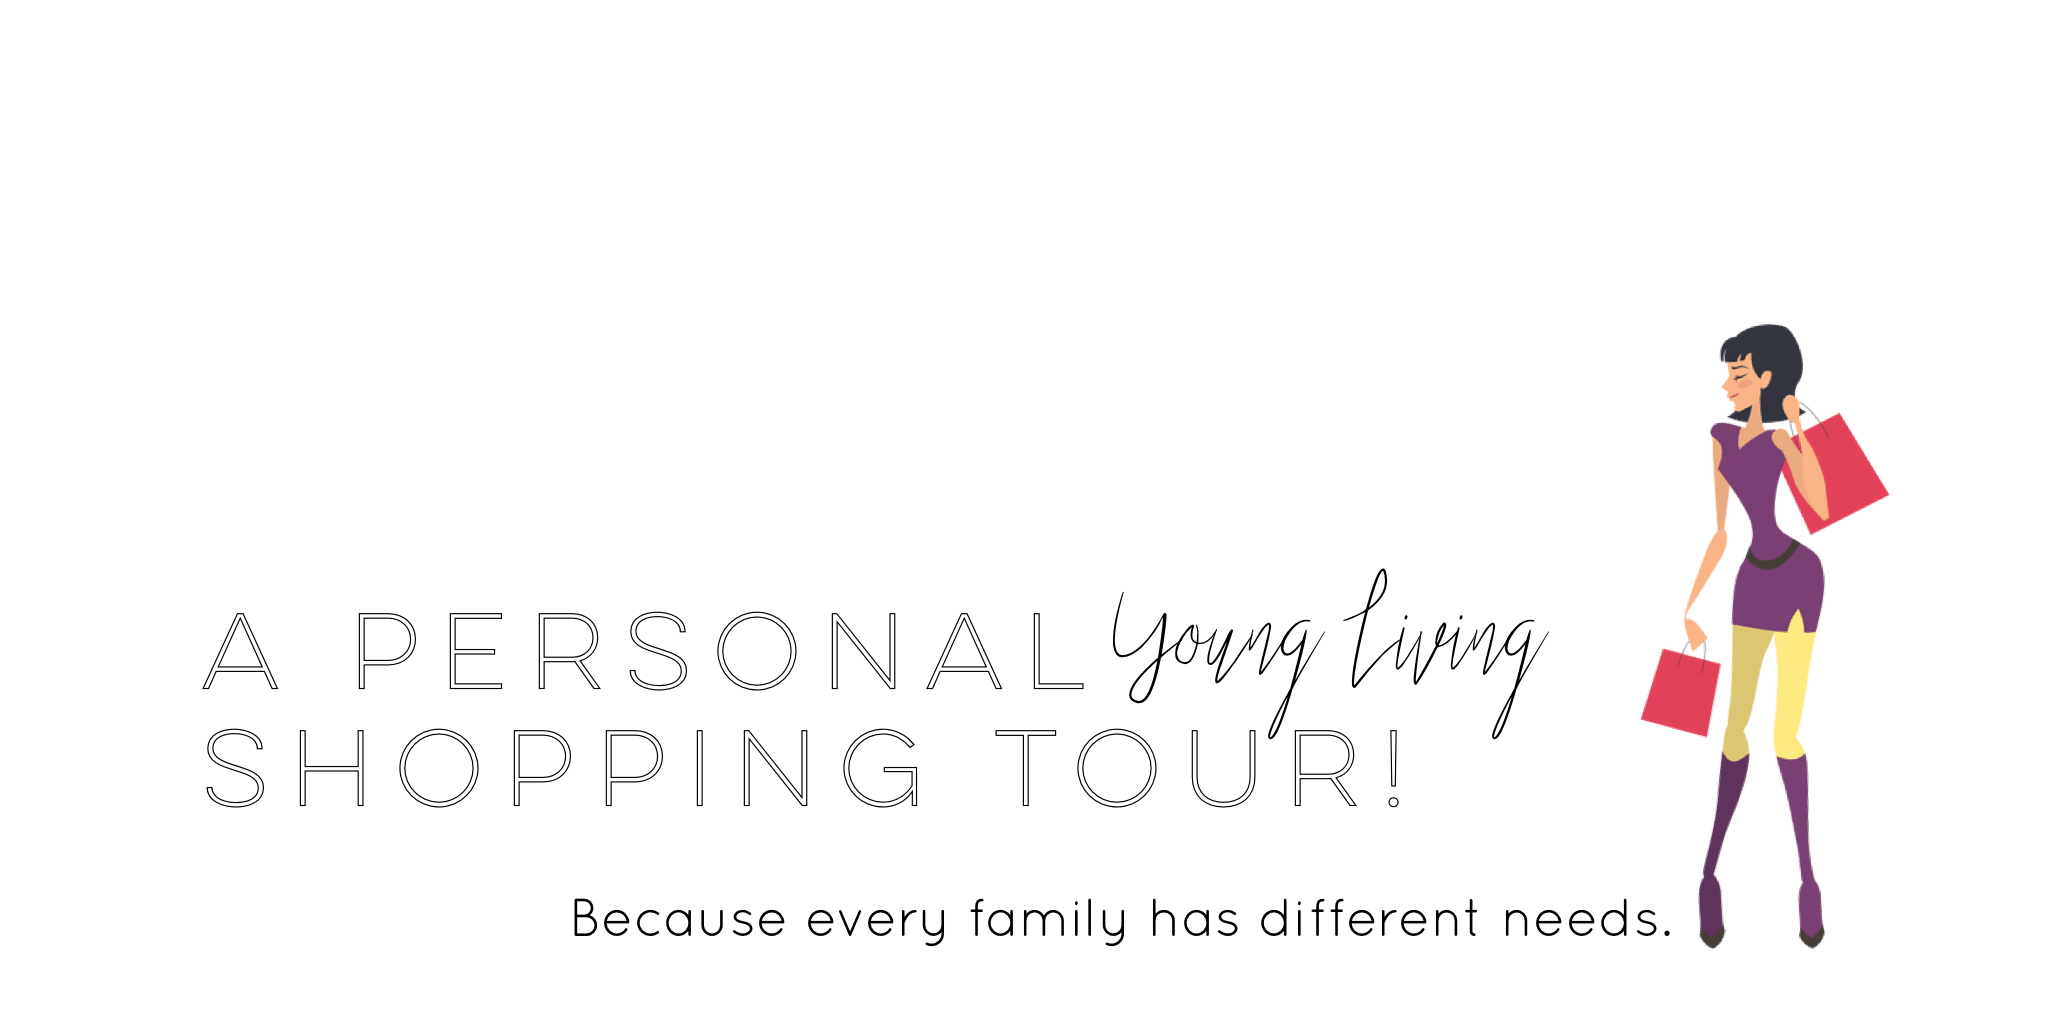 Already have a Young Living Essential Oil membership or considering grabbing one?  There are SO many perks to being a member including wholesale discounts and the ability to earn rewards/cash to get all your plant based oil infused products for FREE.   Our family has been doing that for years now, and its our delight to not only show you how to do it, but to show you how YLEO has over 700+ products that will upgrade the way you run your home and take care of your health!      Click here   to see this online event where me and my friends give you a virtual shopping tour of YLEO!